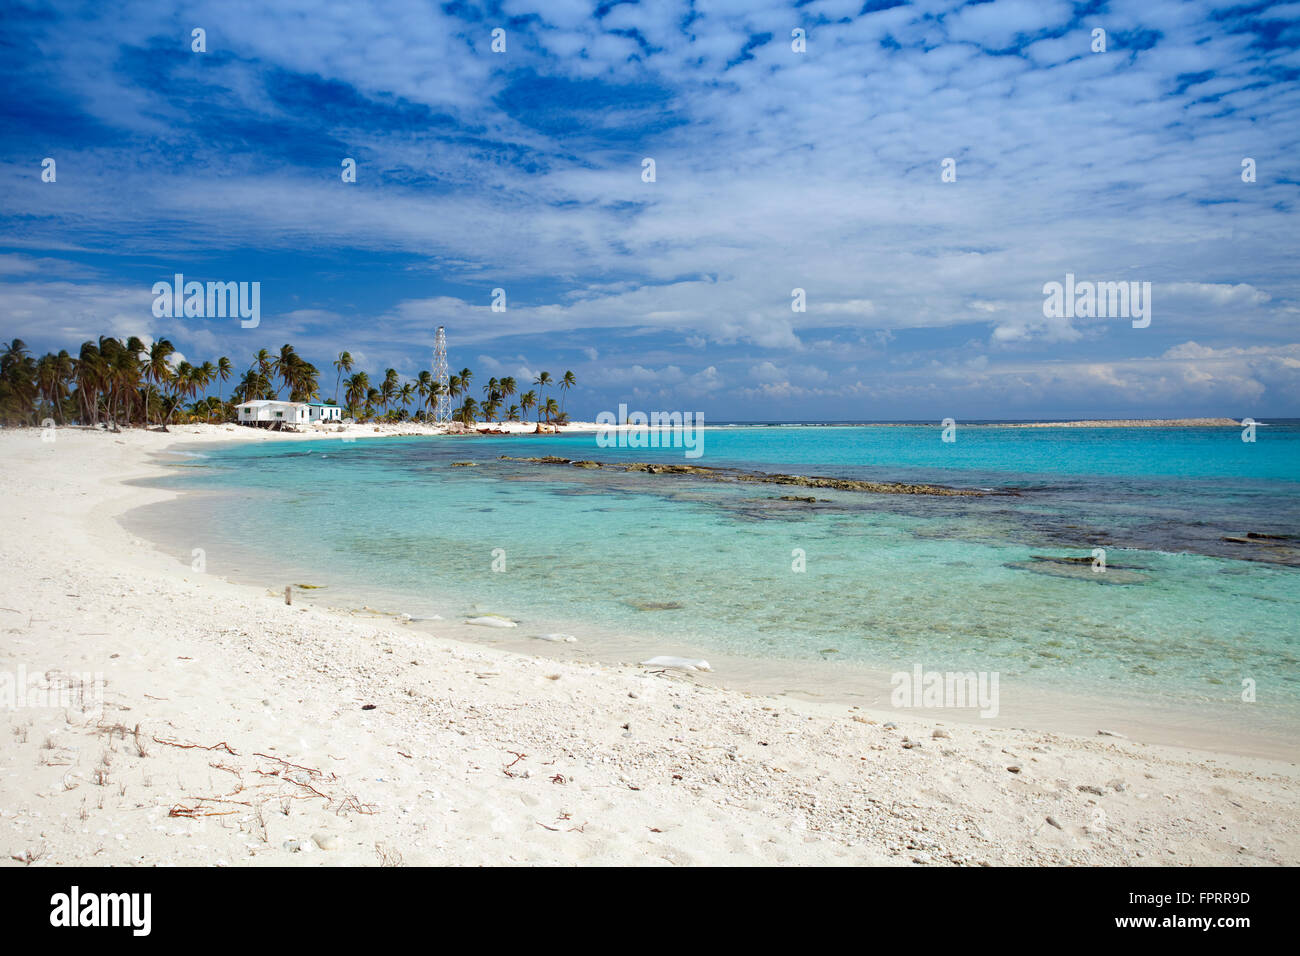 Geography/travel, Americas, Central America, Belize, Lighthouse atoll, Half Moon Caye, a coral caye in the Caribbean - Stock Image